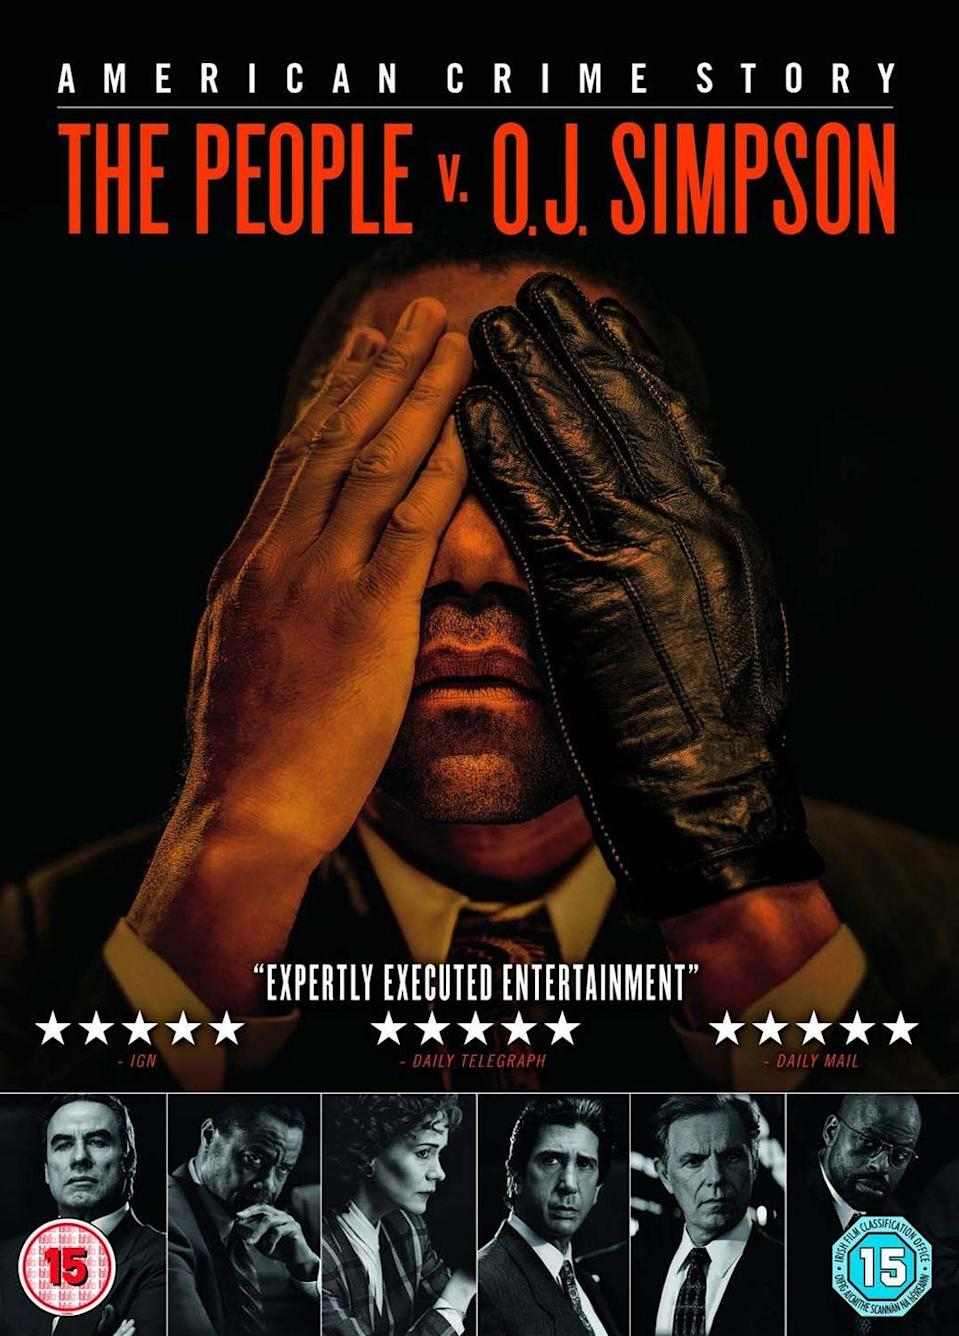 """<p><strong>Air date: </strong>2016 on FX</p><p>Murphy isn't technically the creator of <em>American Crime Story, </em>but he does serve as a producer and occasional director, and his fingerprints are all over the series, which gets under the hood of well-known events like O.J. Simpson's 1995 murder trial. </p><p>This first season, which featured Cuba Gooding, Jr. as Simpson and supporting turns from Sarah Paulson, Sterling K. Brown, and Courtney B. Vance, received rave reviews and won five Primetime Emmys.</p><p>Murphy directed four episodes and serves as exec producer.</p><p><a class=""""link rapid-noclick-resp"""" href=""""https://www.netflix.com/title/80083977"""" rel=""""nofollow noopener"""" target=""""_blank"""" data-ylk=""""slk:WATCH NOW"""">WATCH NOW</a></p>"""